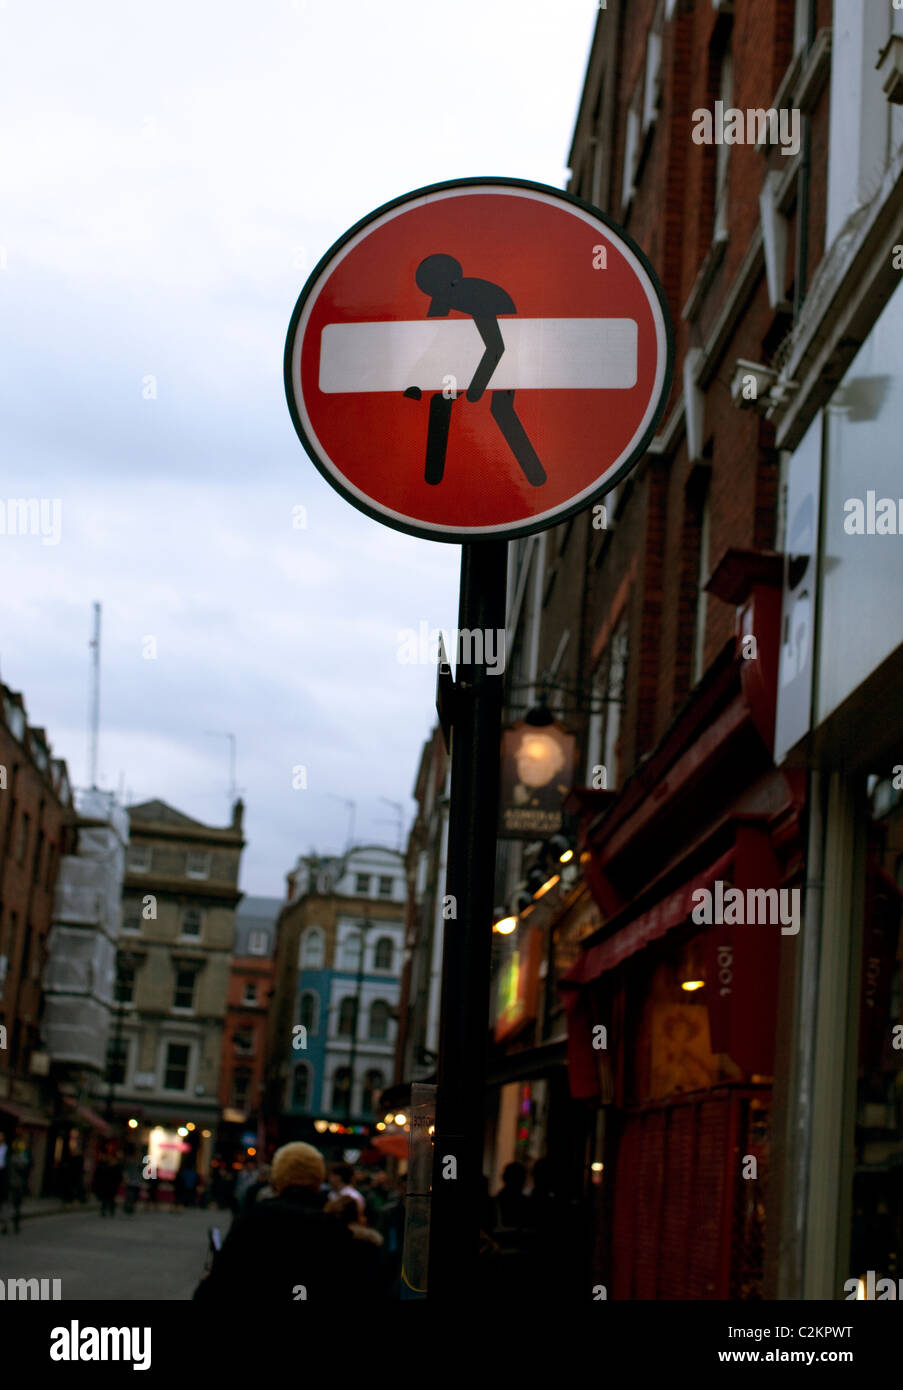 Graffitised No Entry sign in Central London street - Stock Image